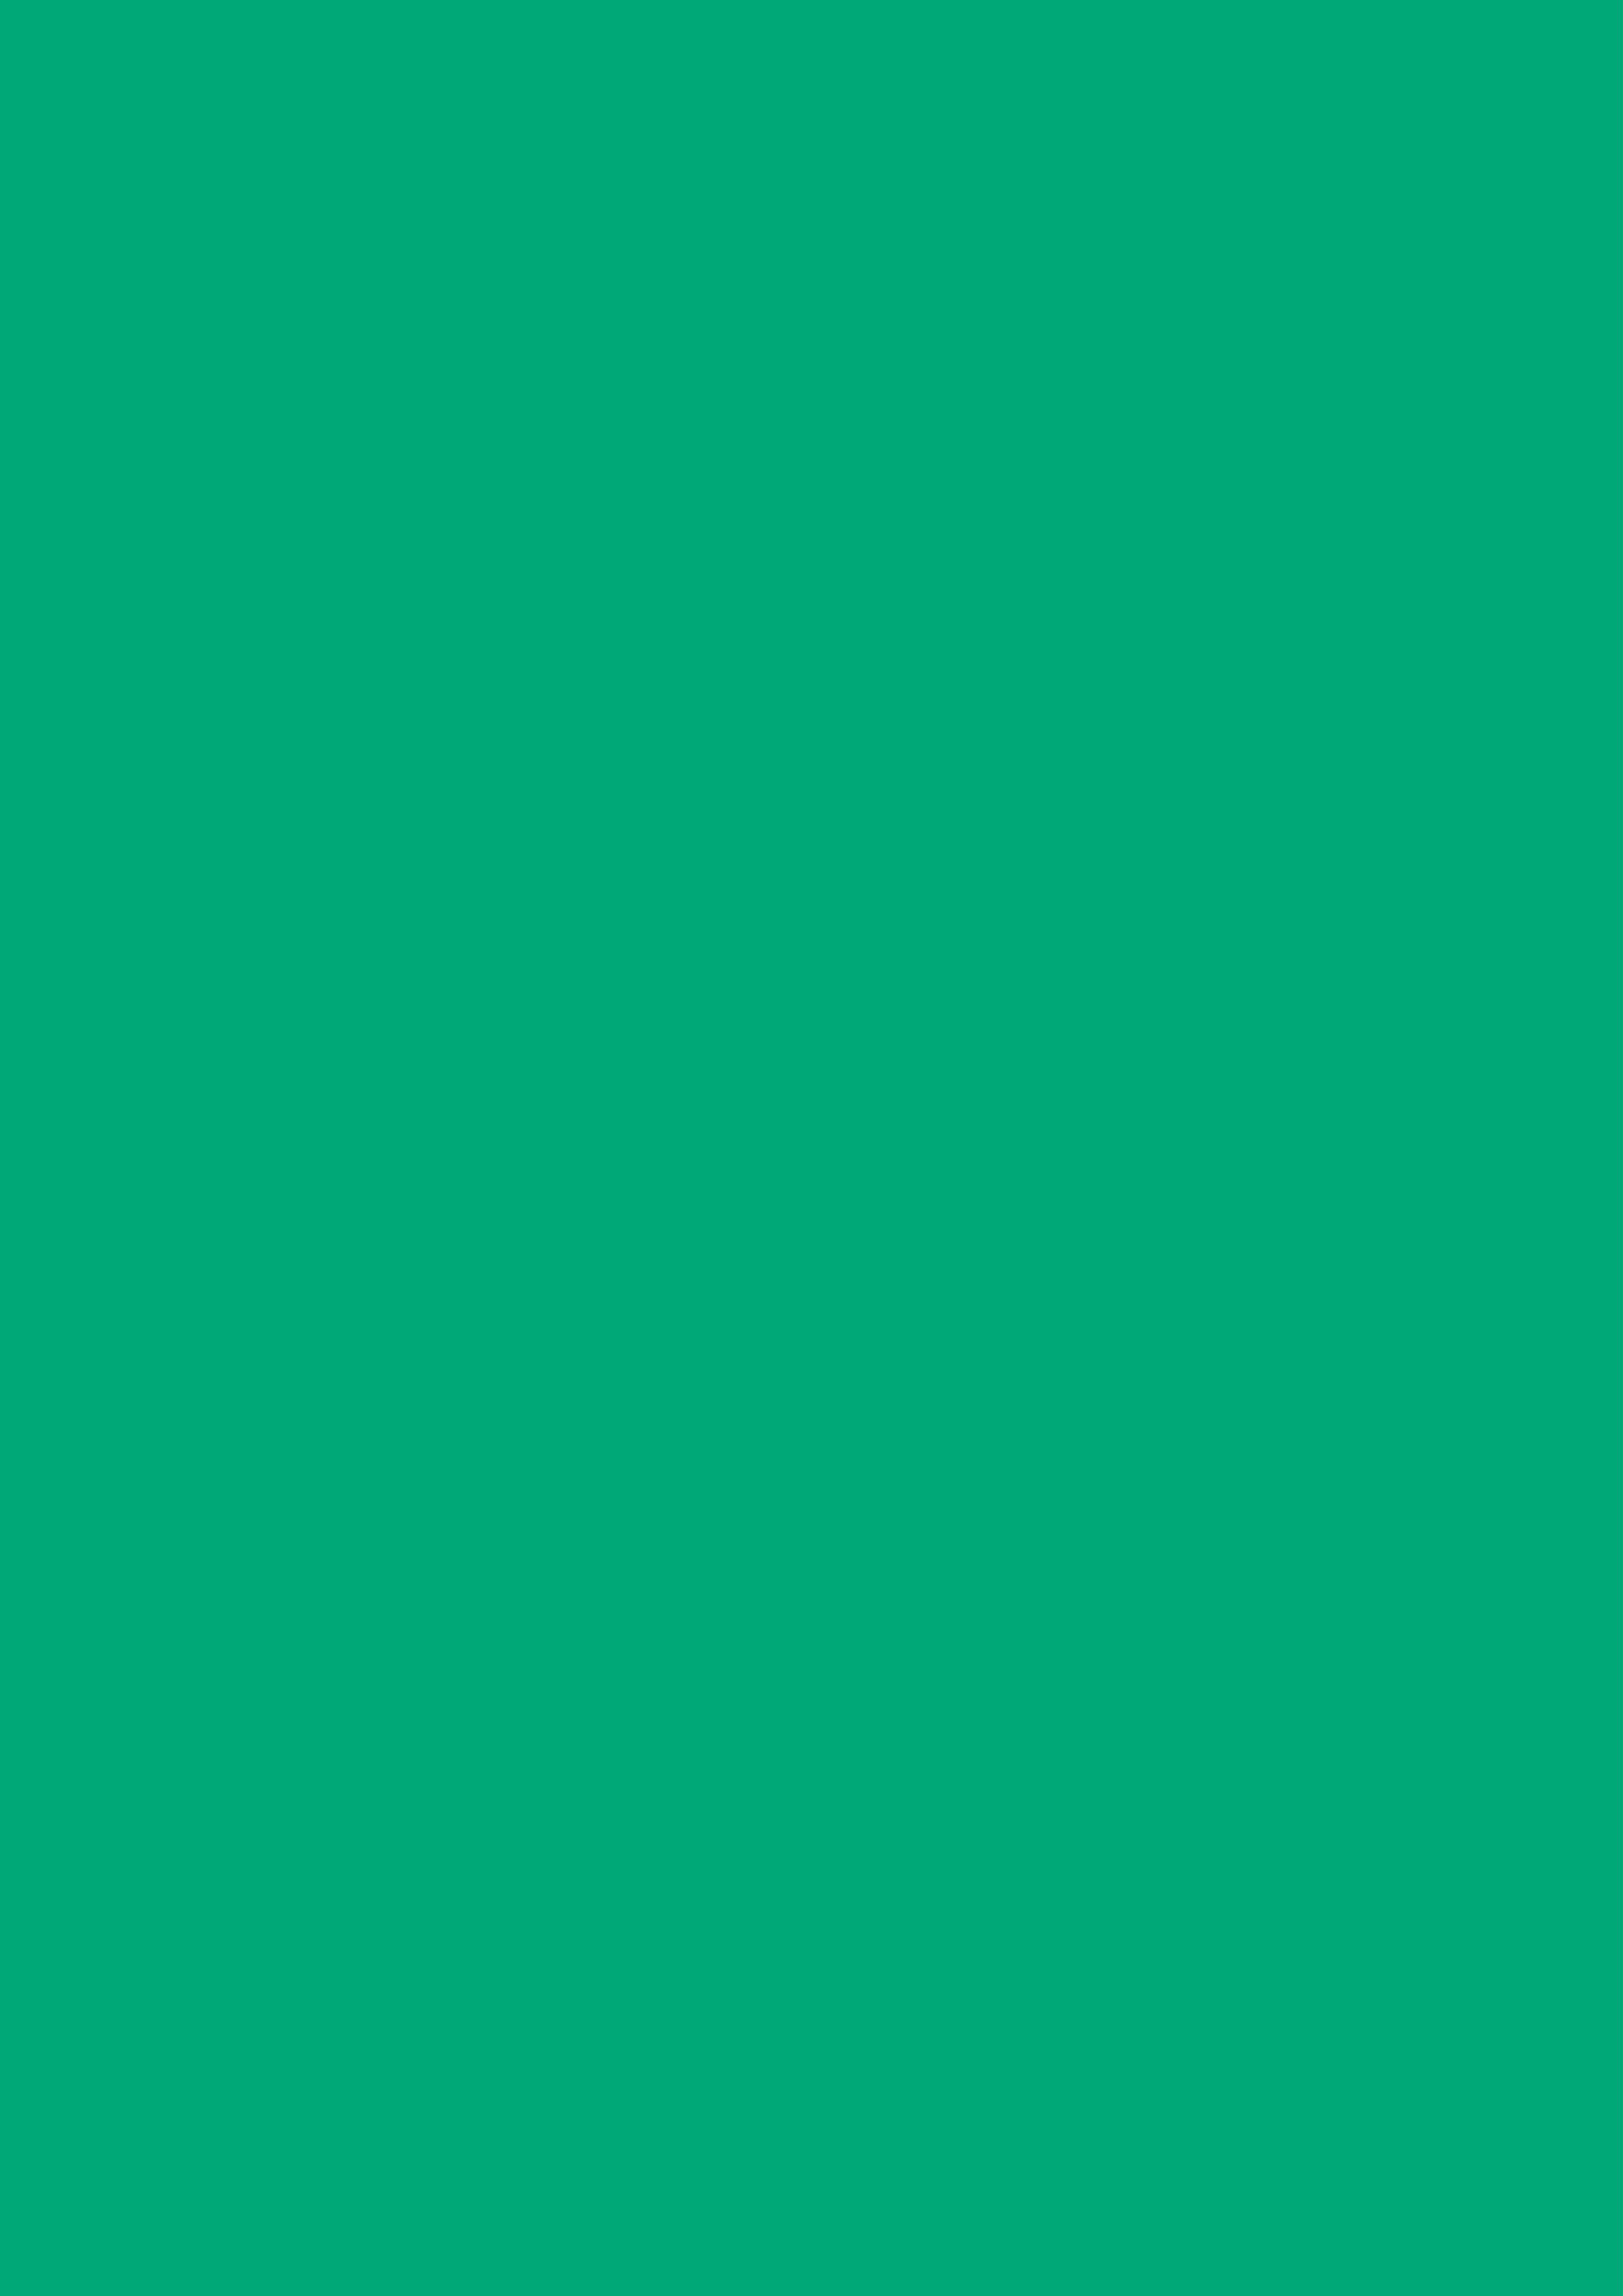 2480x3508 Green Munsell Solid Color Background